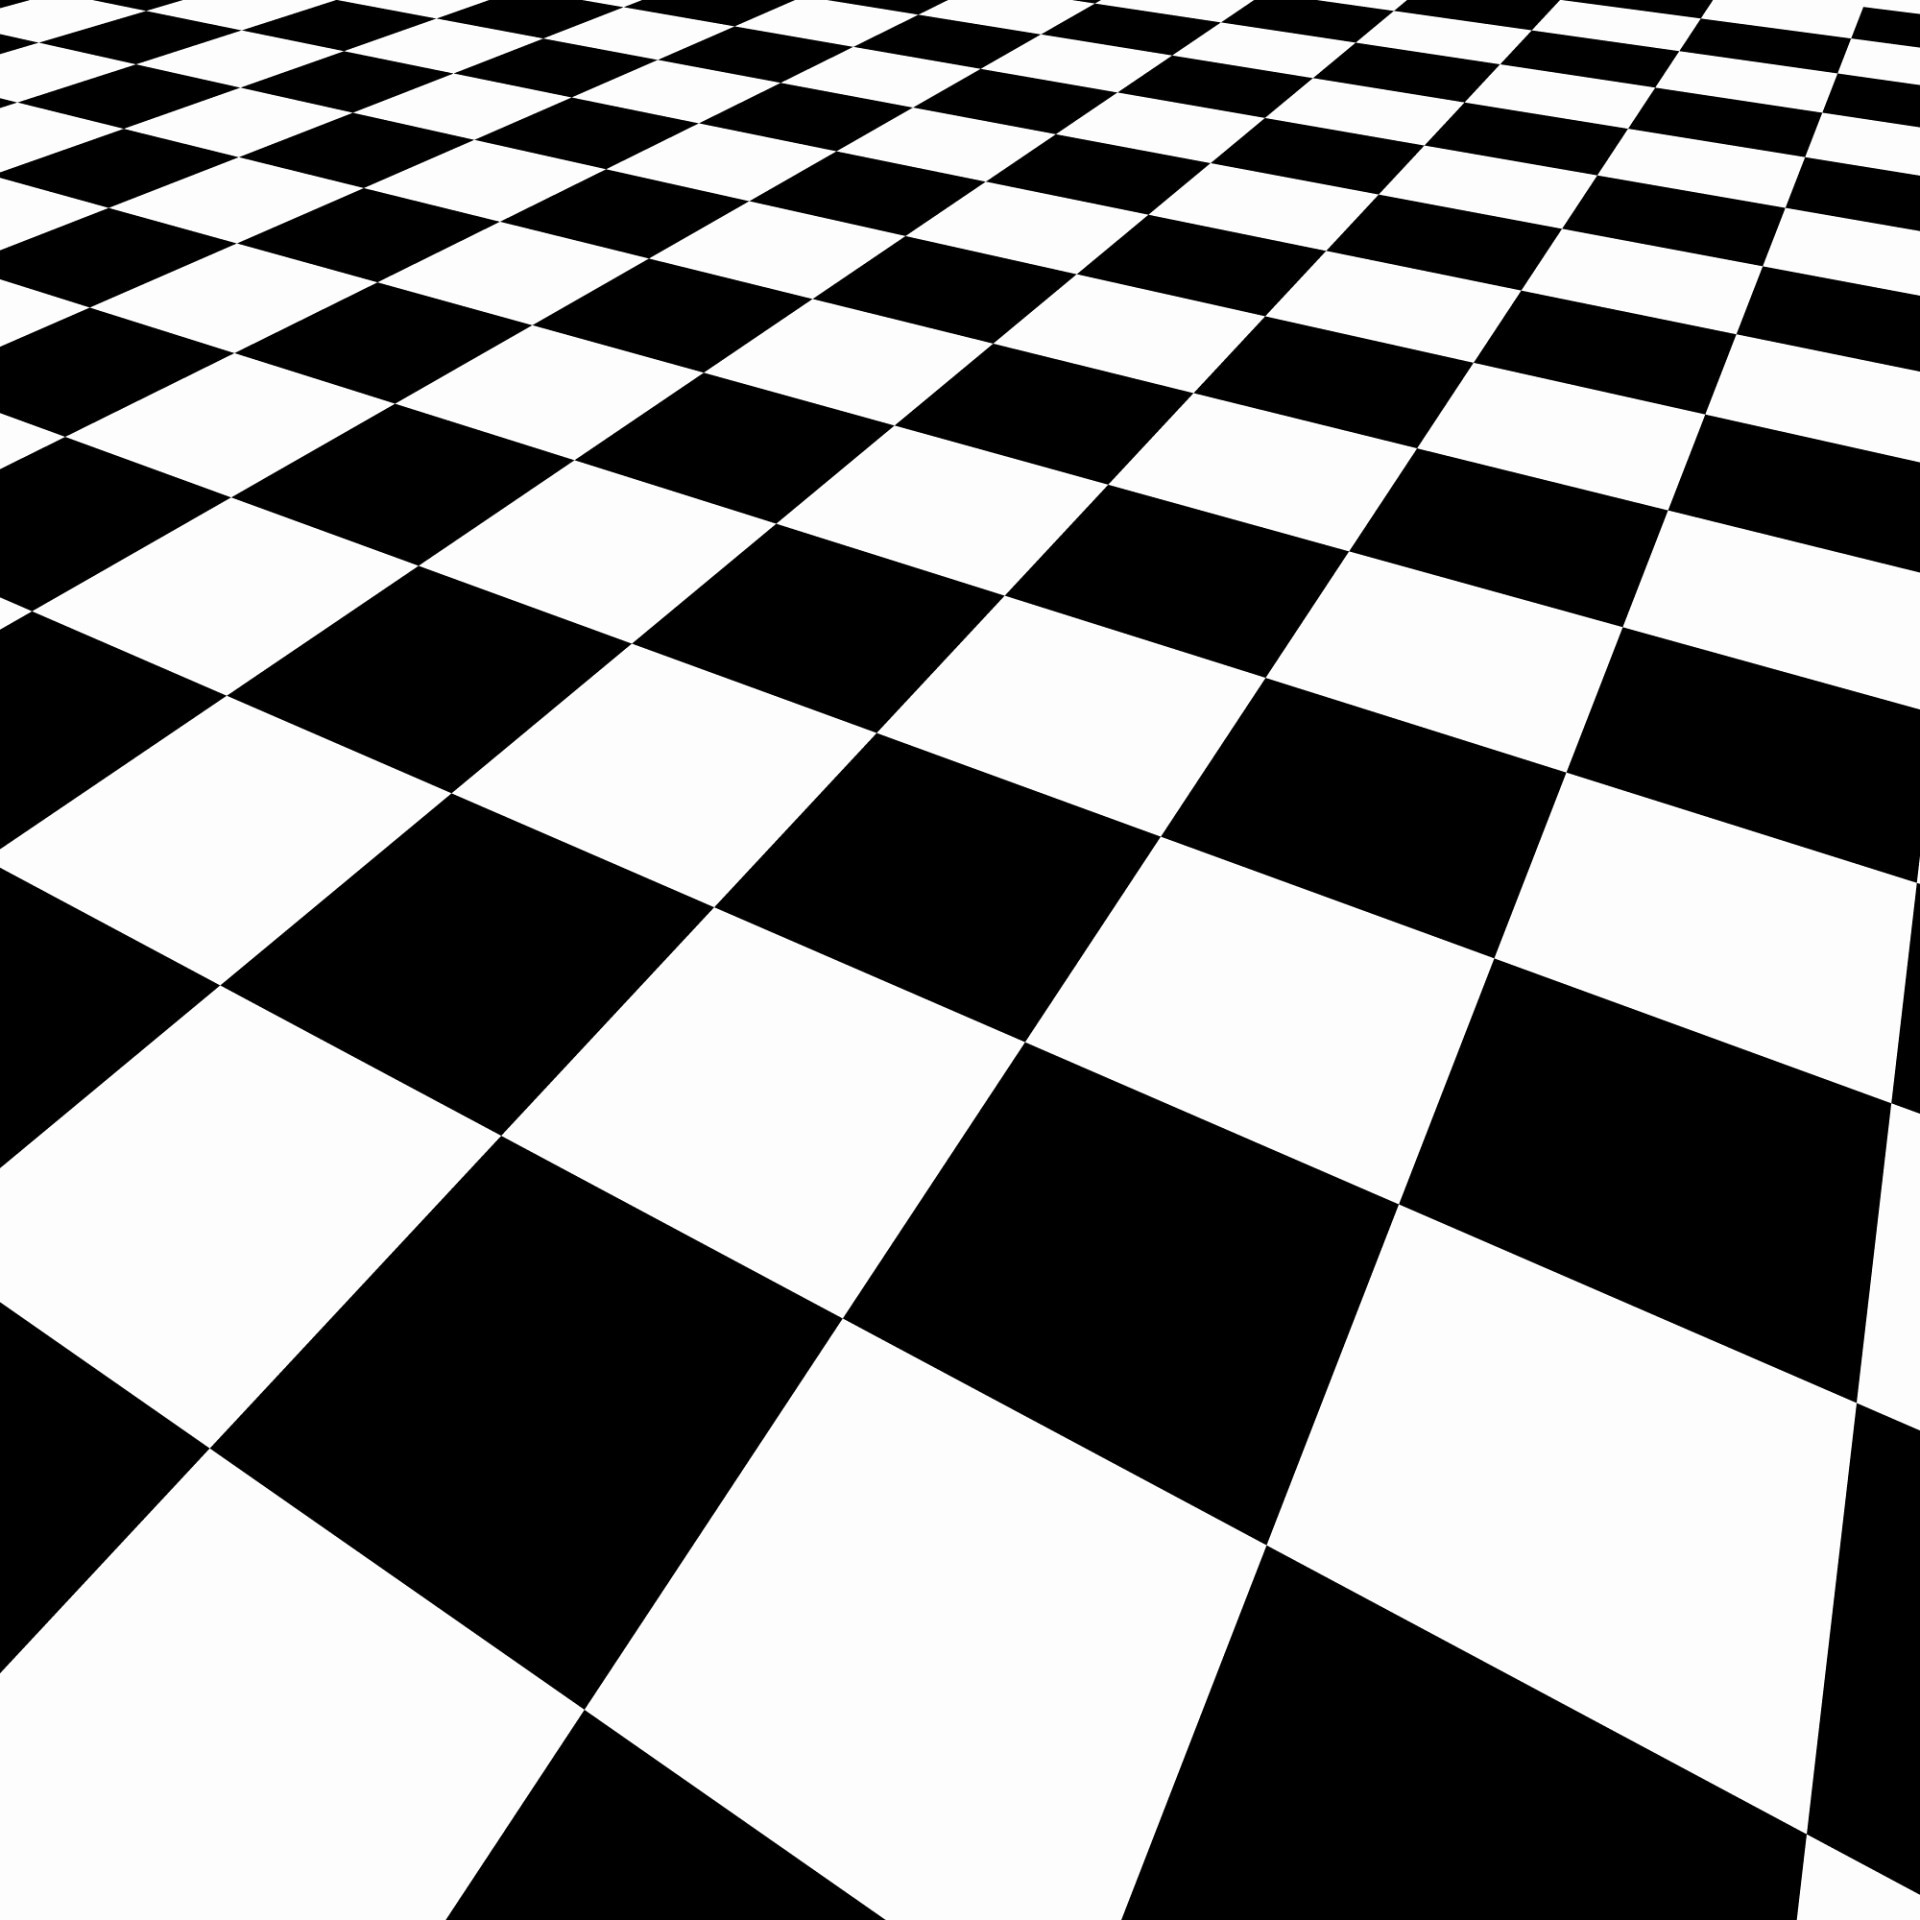 Pictures Of A Checker Board Inspirational Checkered Black and White Image Free Stock Public